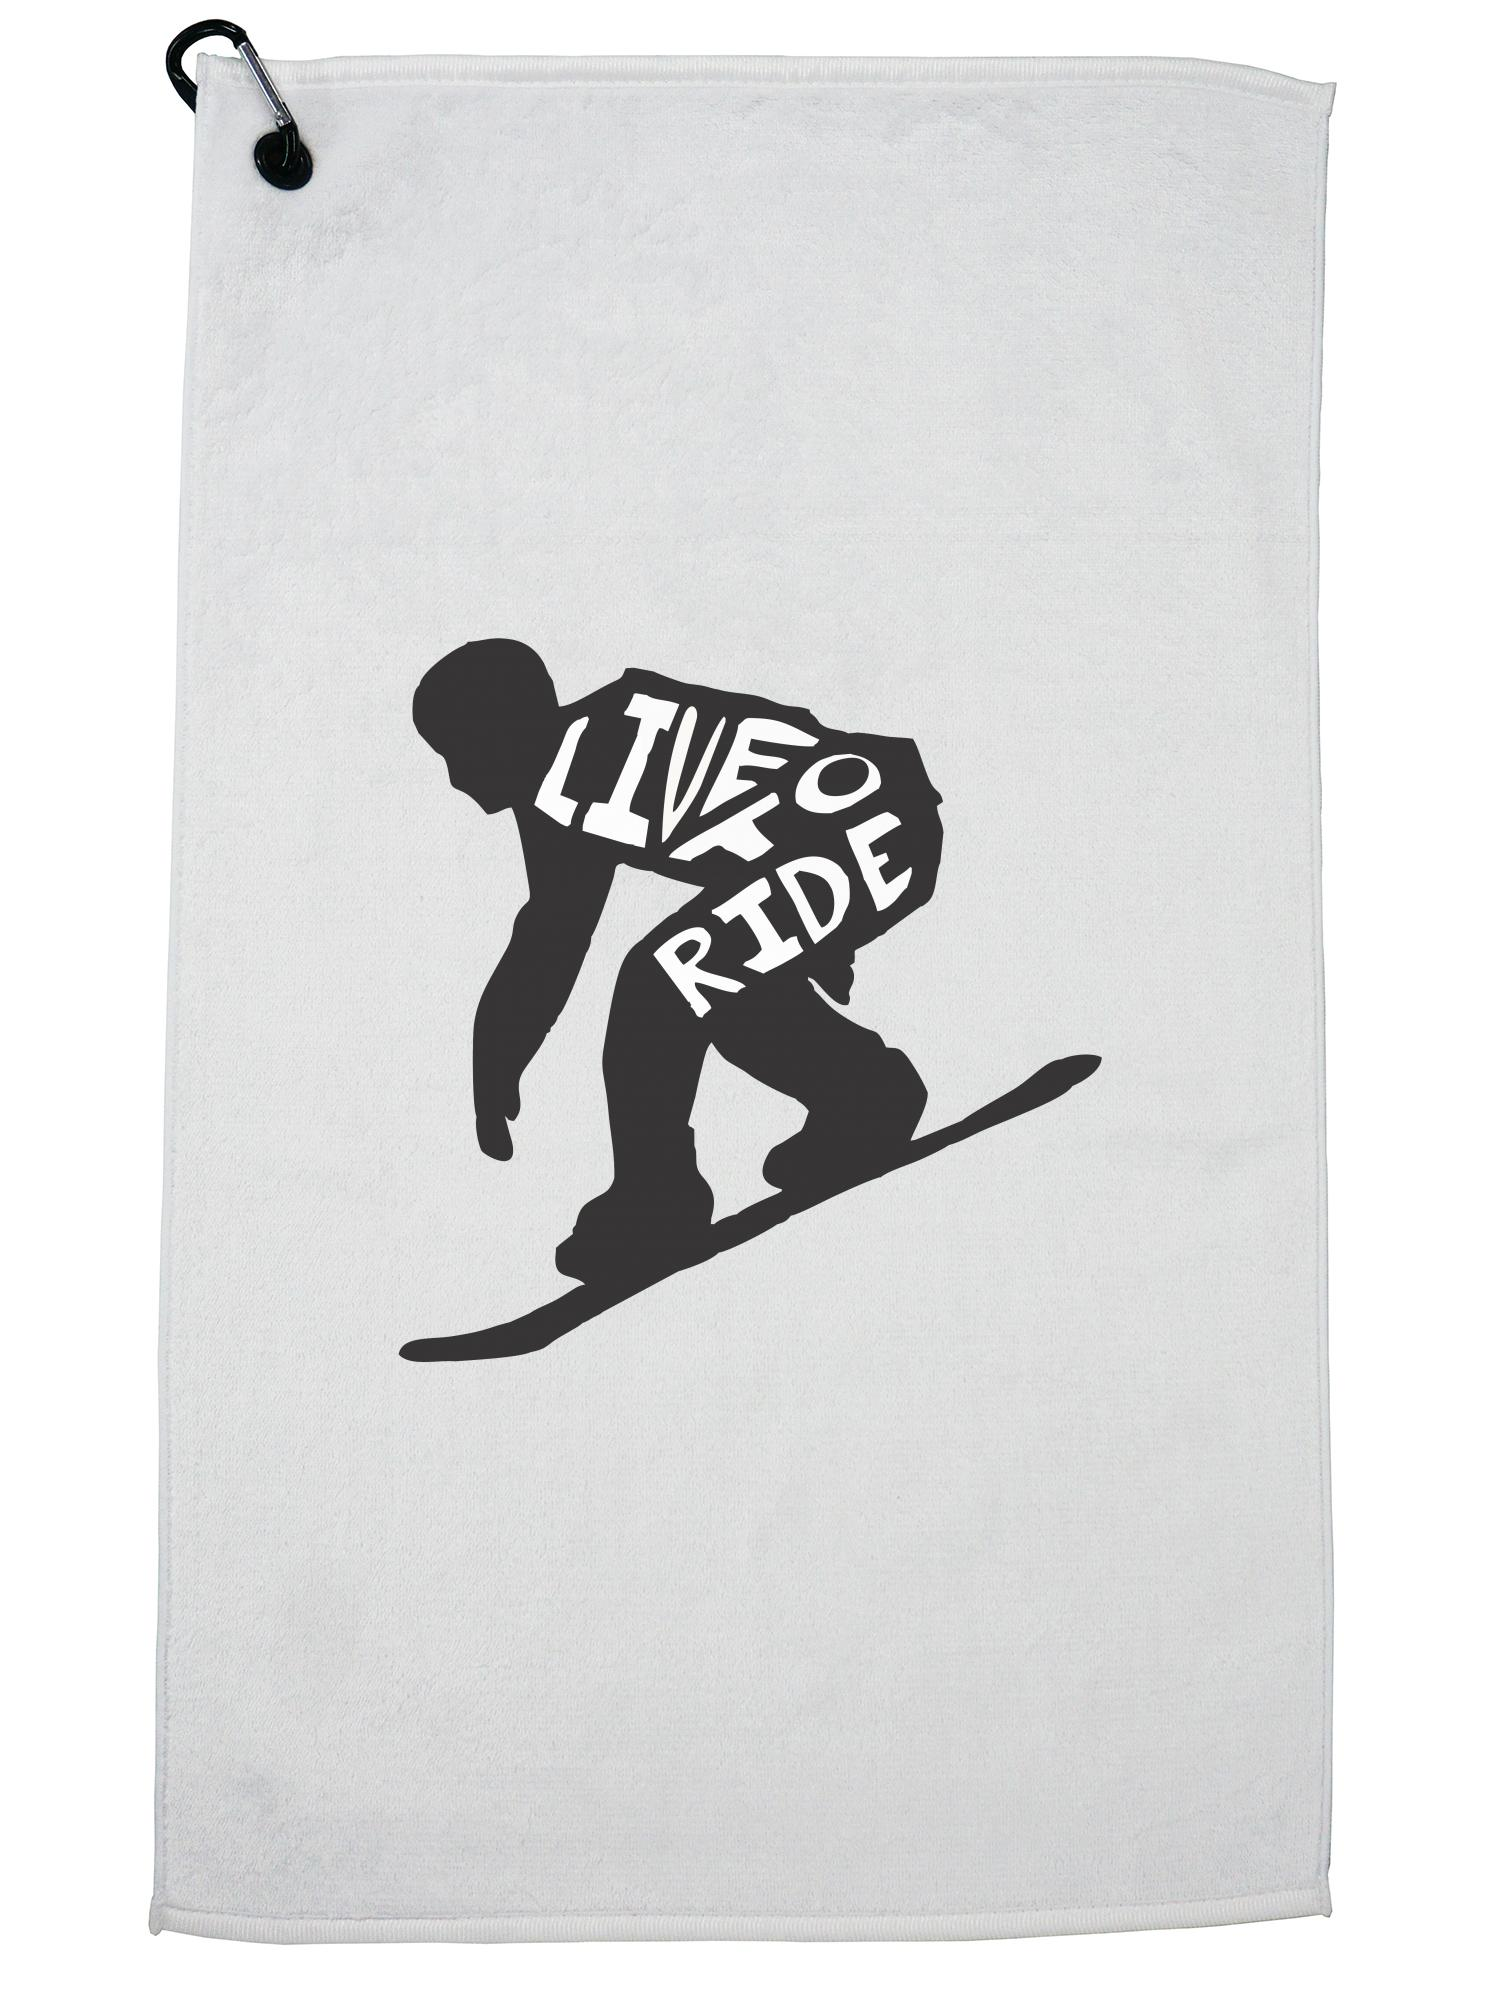 Trendy Snowboard Live to Ride Silhouette Skiing Golf Towel with Carabiner Clip by Hollywood Thread